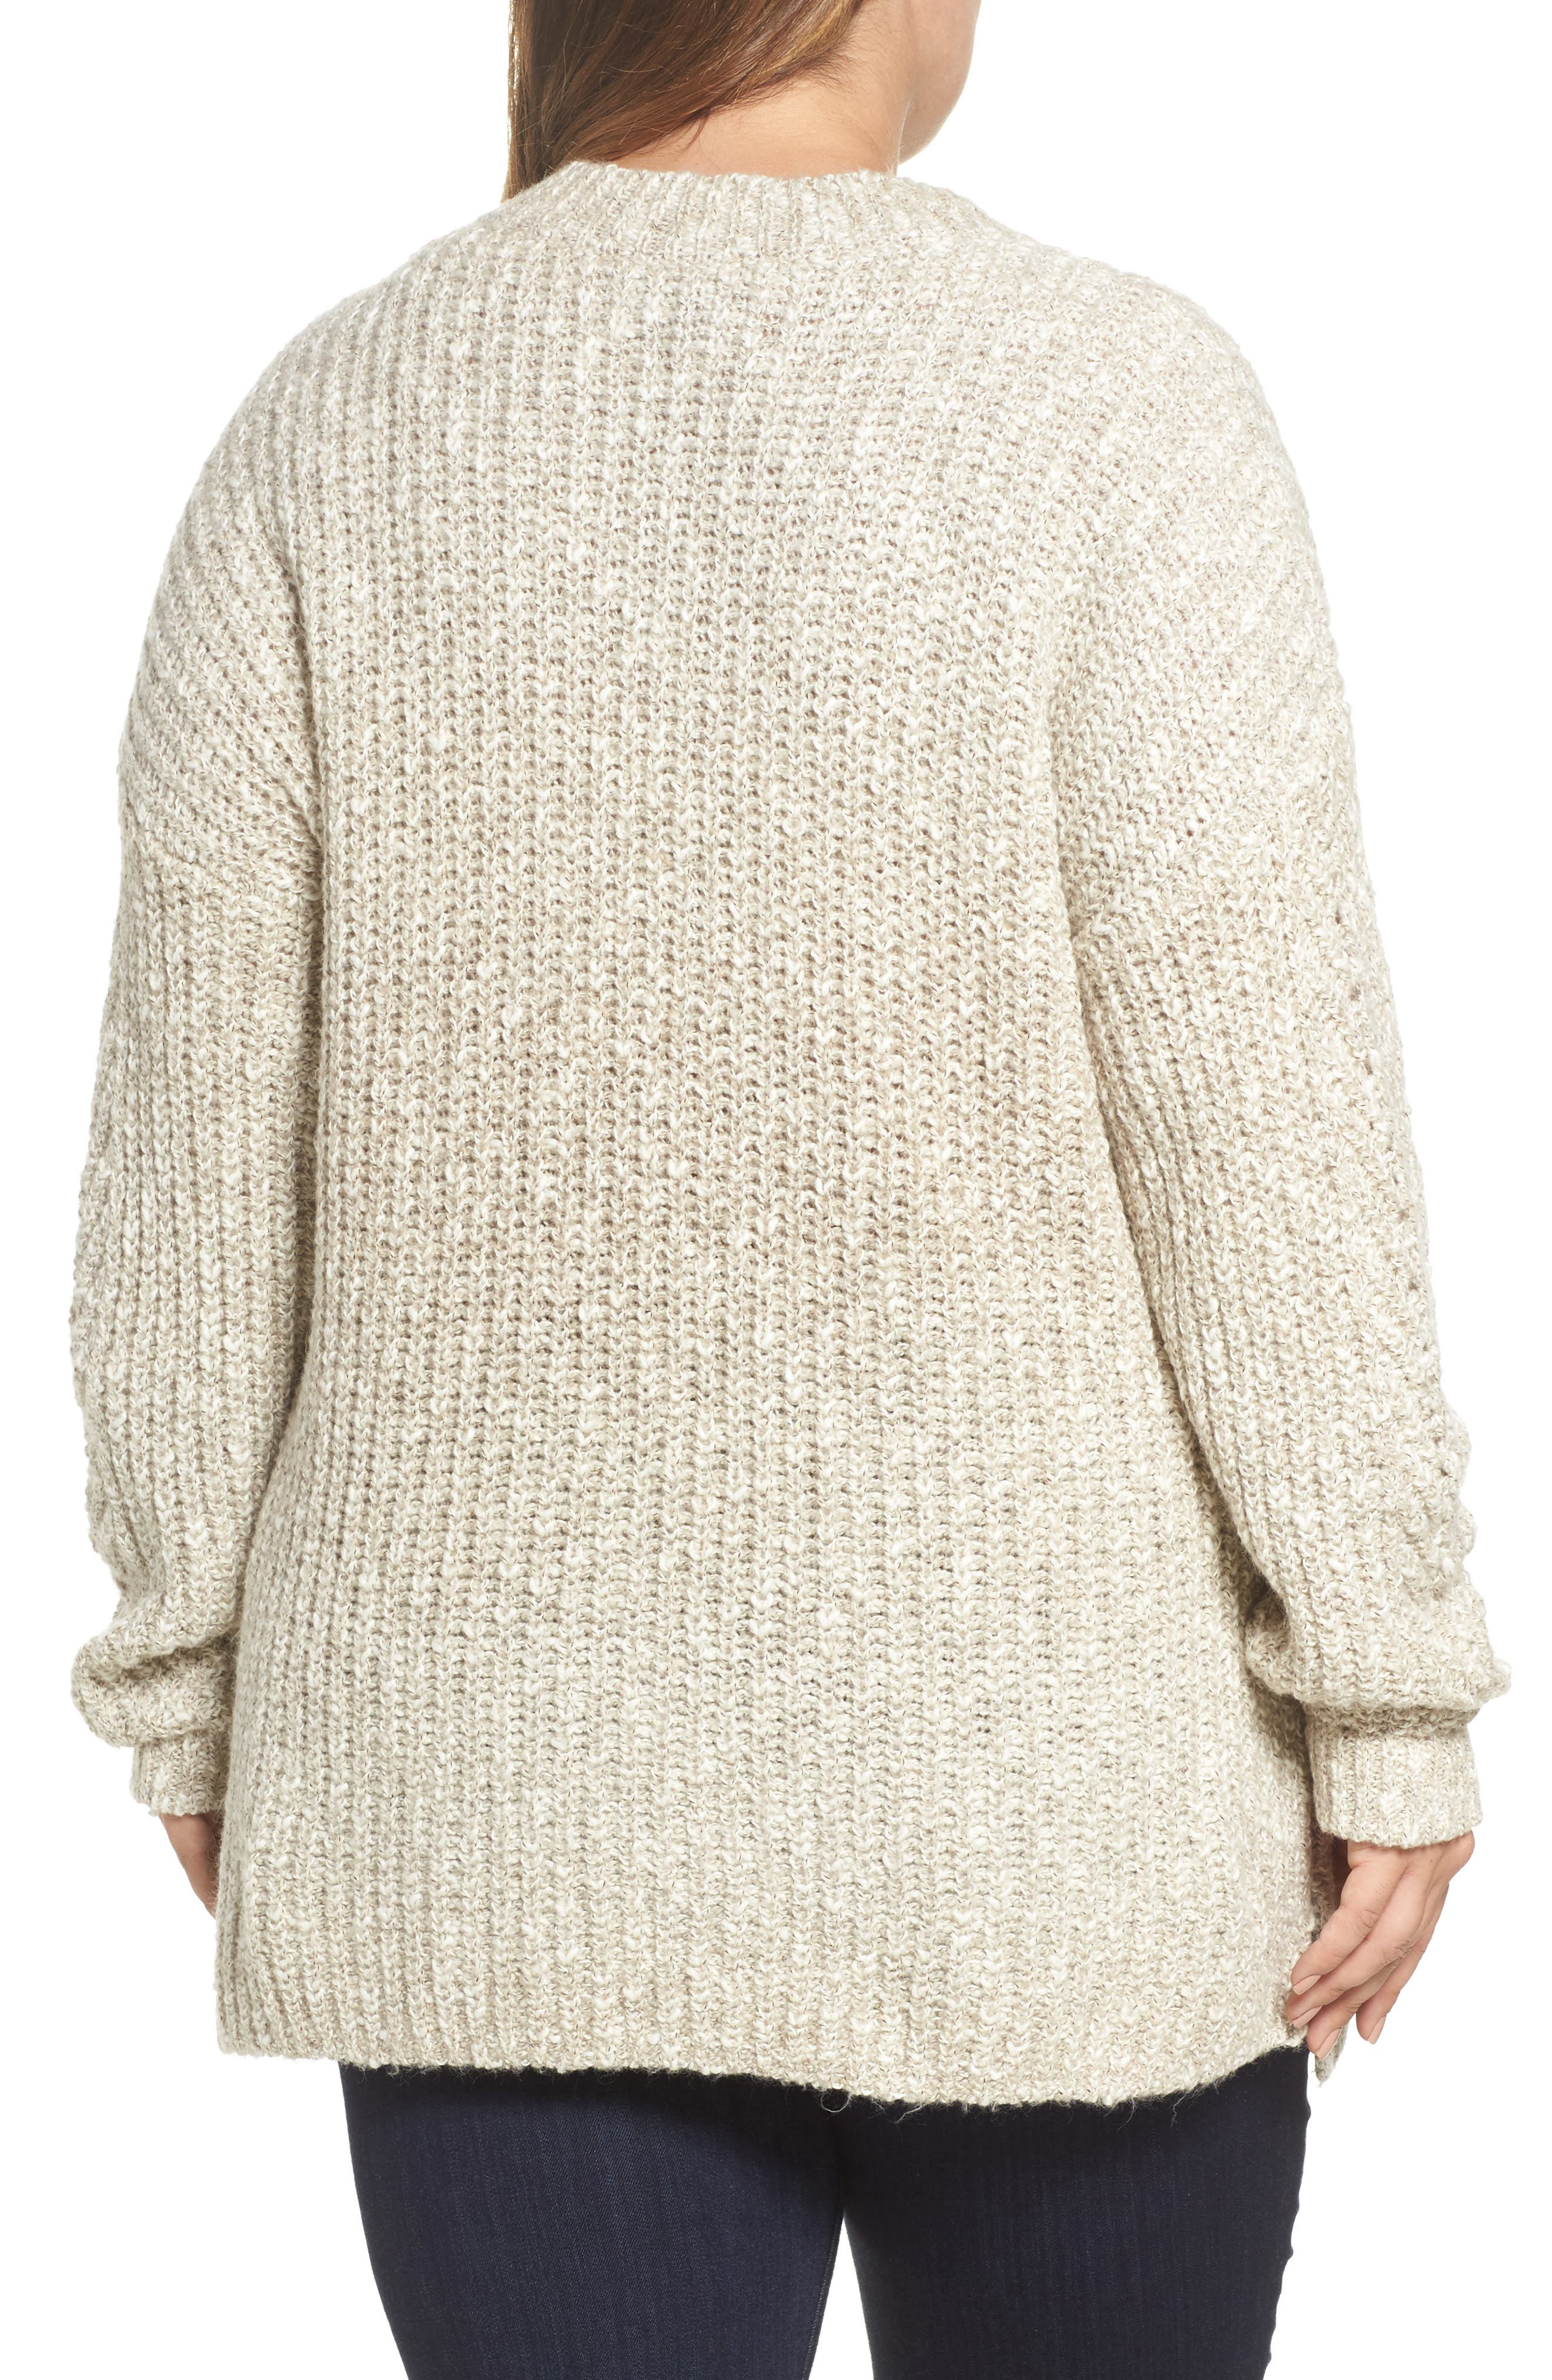 Open Stitch Sweater,                             Alternate thumbnail 2, color,                             250